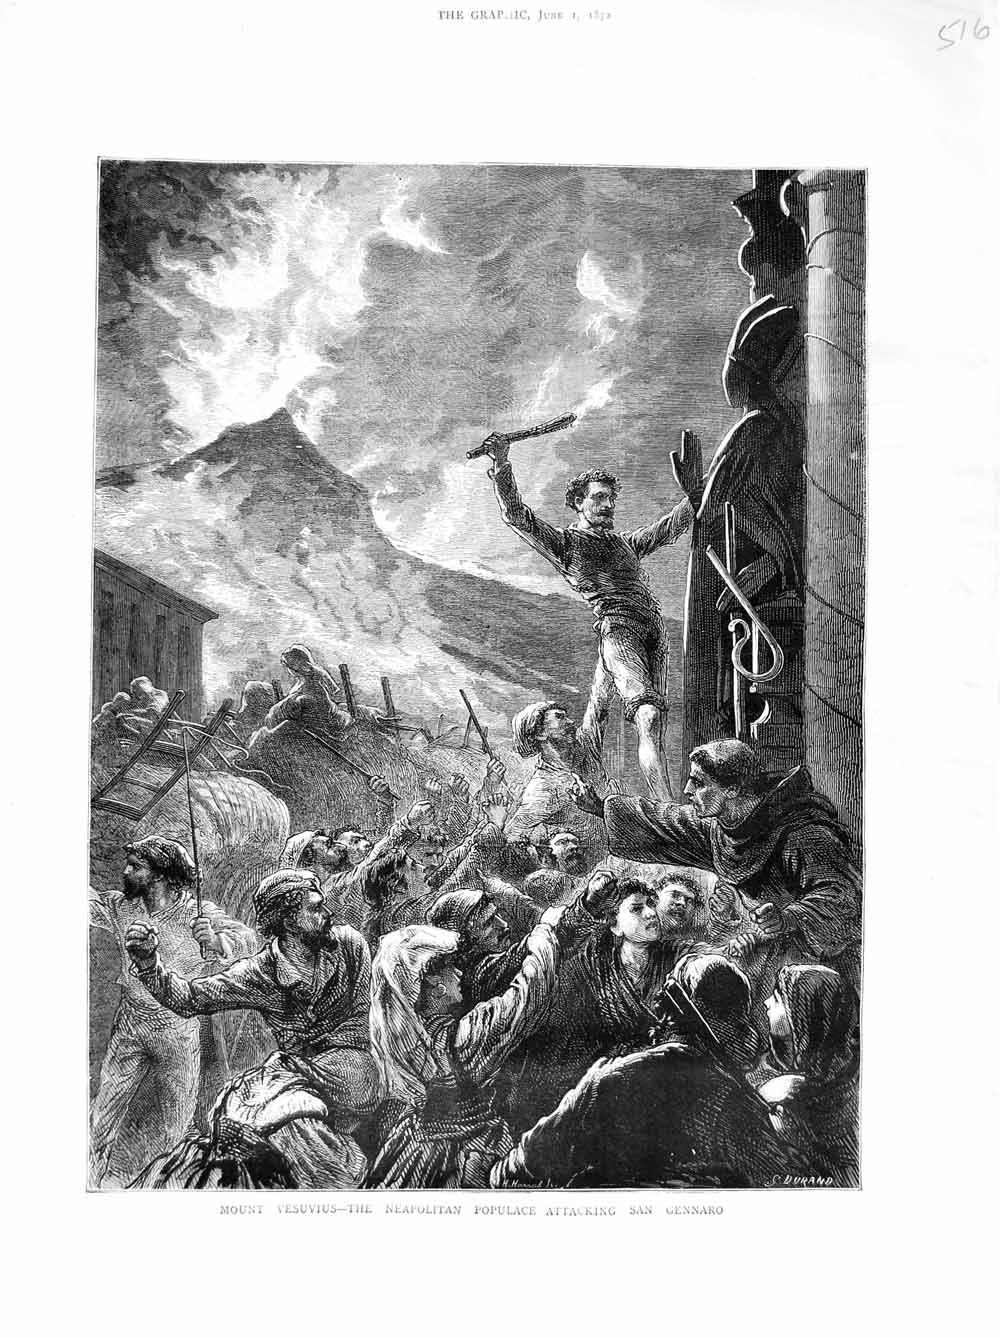 Print 1872 Mount Vesuvius Neapolitan San Gennaro Attacking Old Original